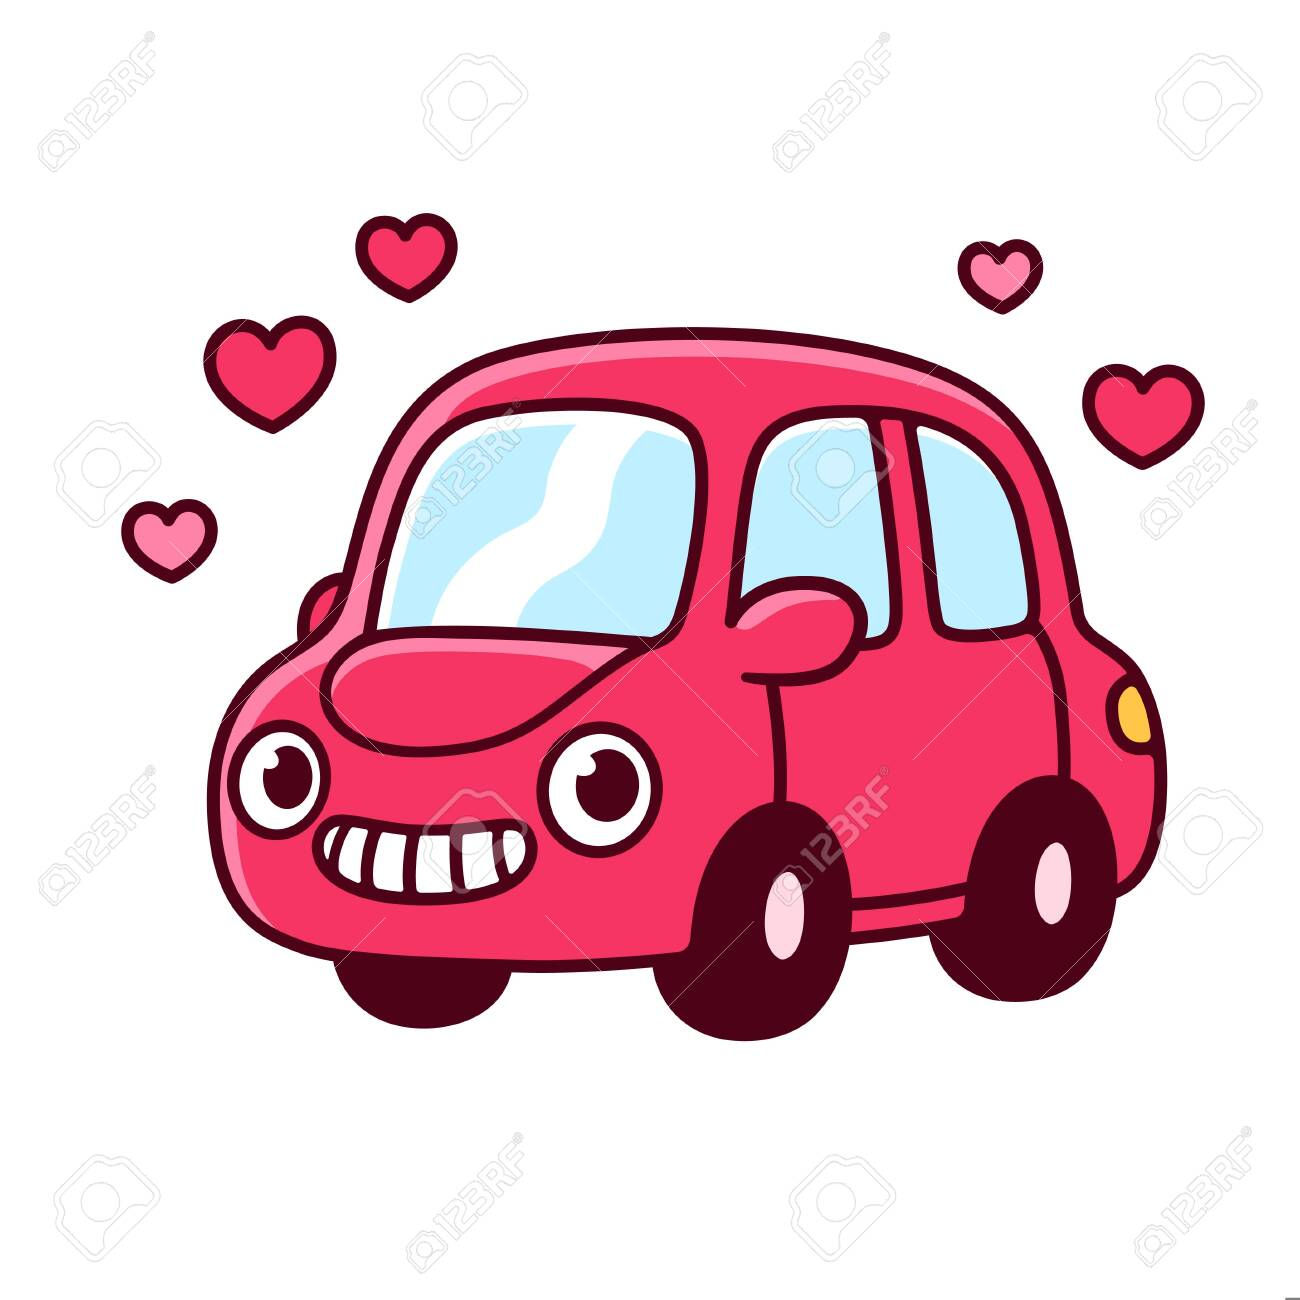 Cute Cartoon Car Drawing With Funny Face Adorable Little Car